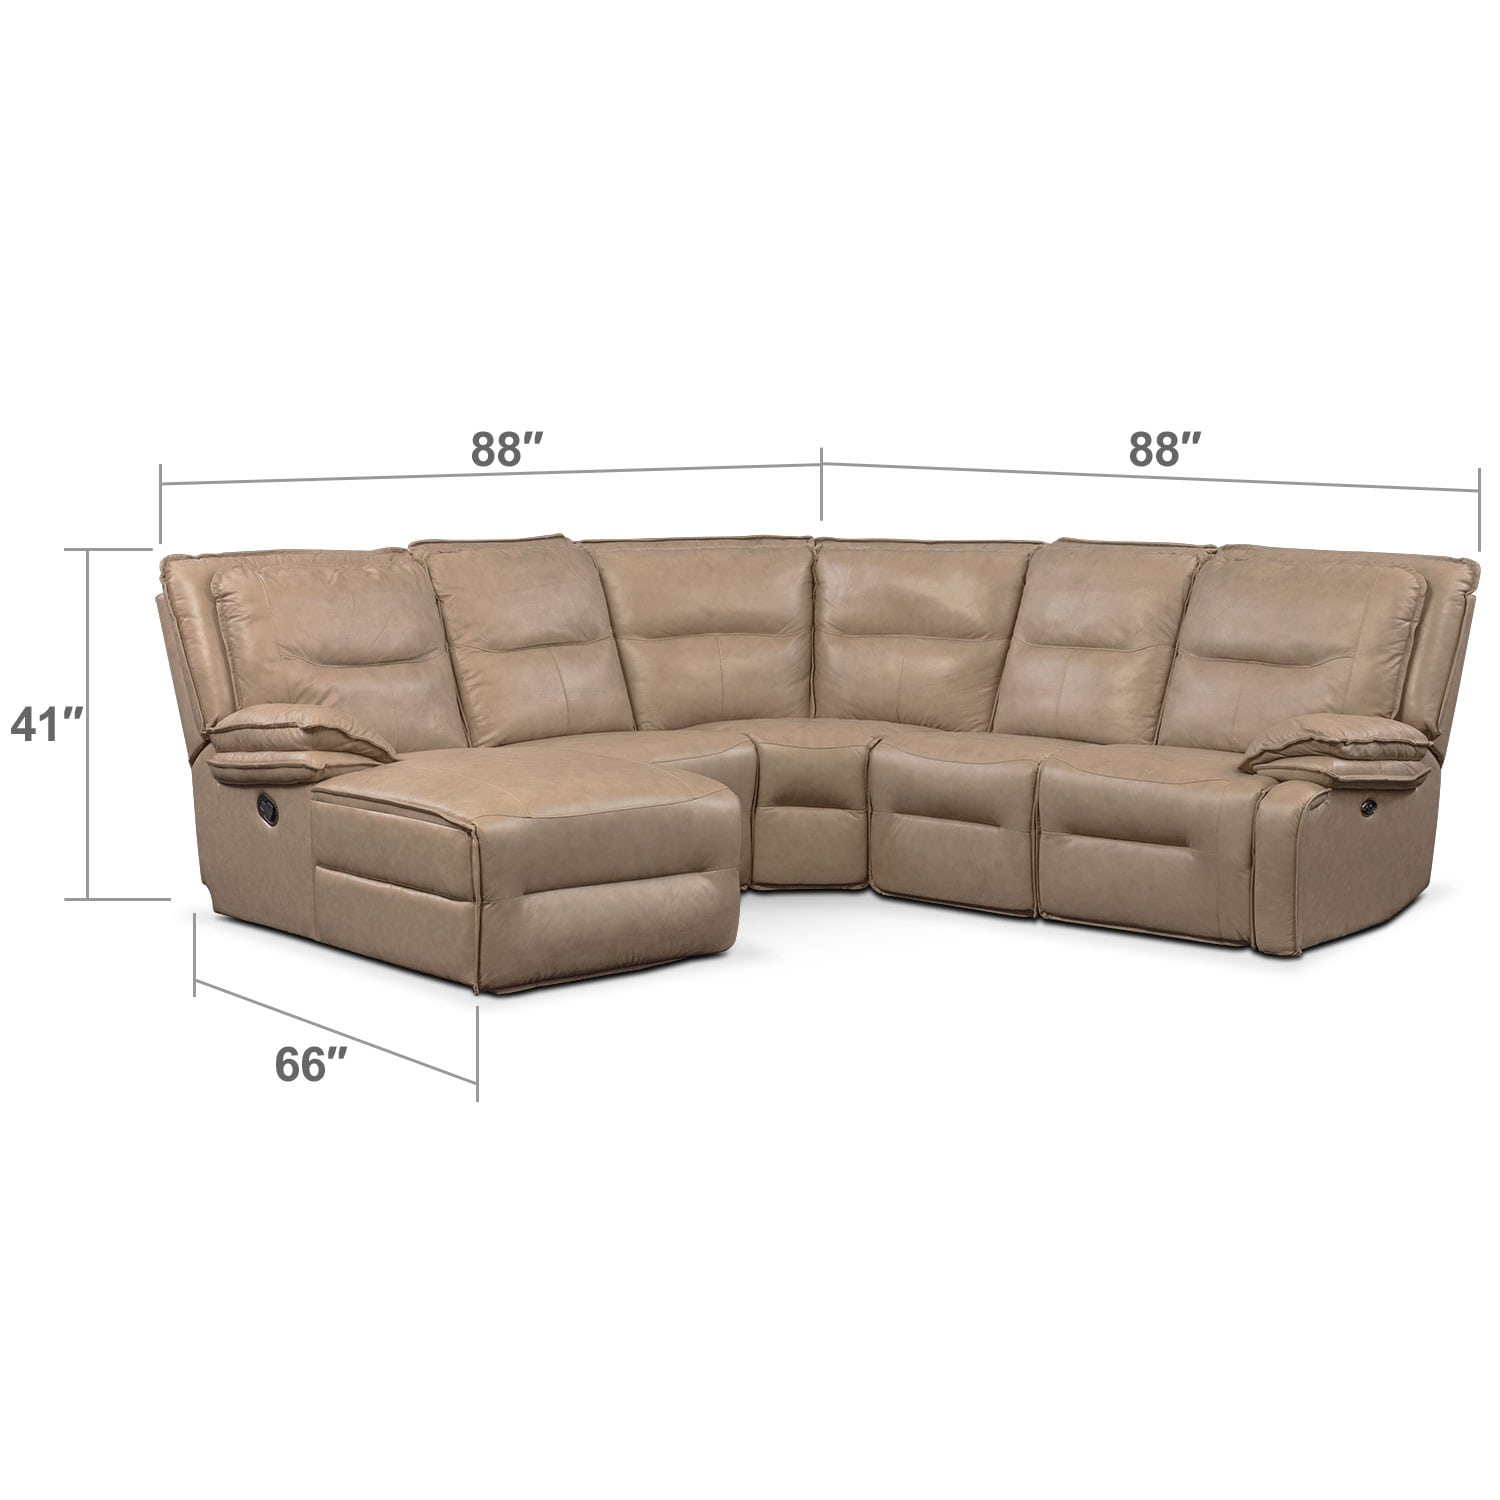 Living Room Furniture - Nikki 5-Piece Power Reclining Sectional with 2 Recliners and Left-Facing Chaise - Taupe